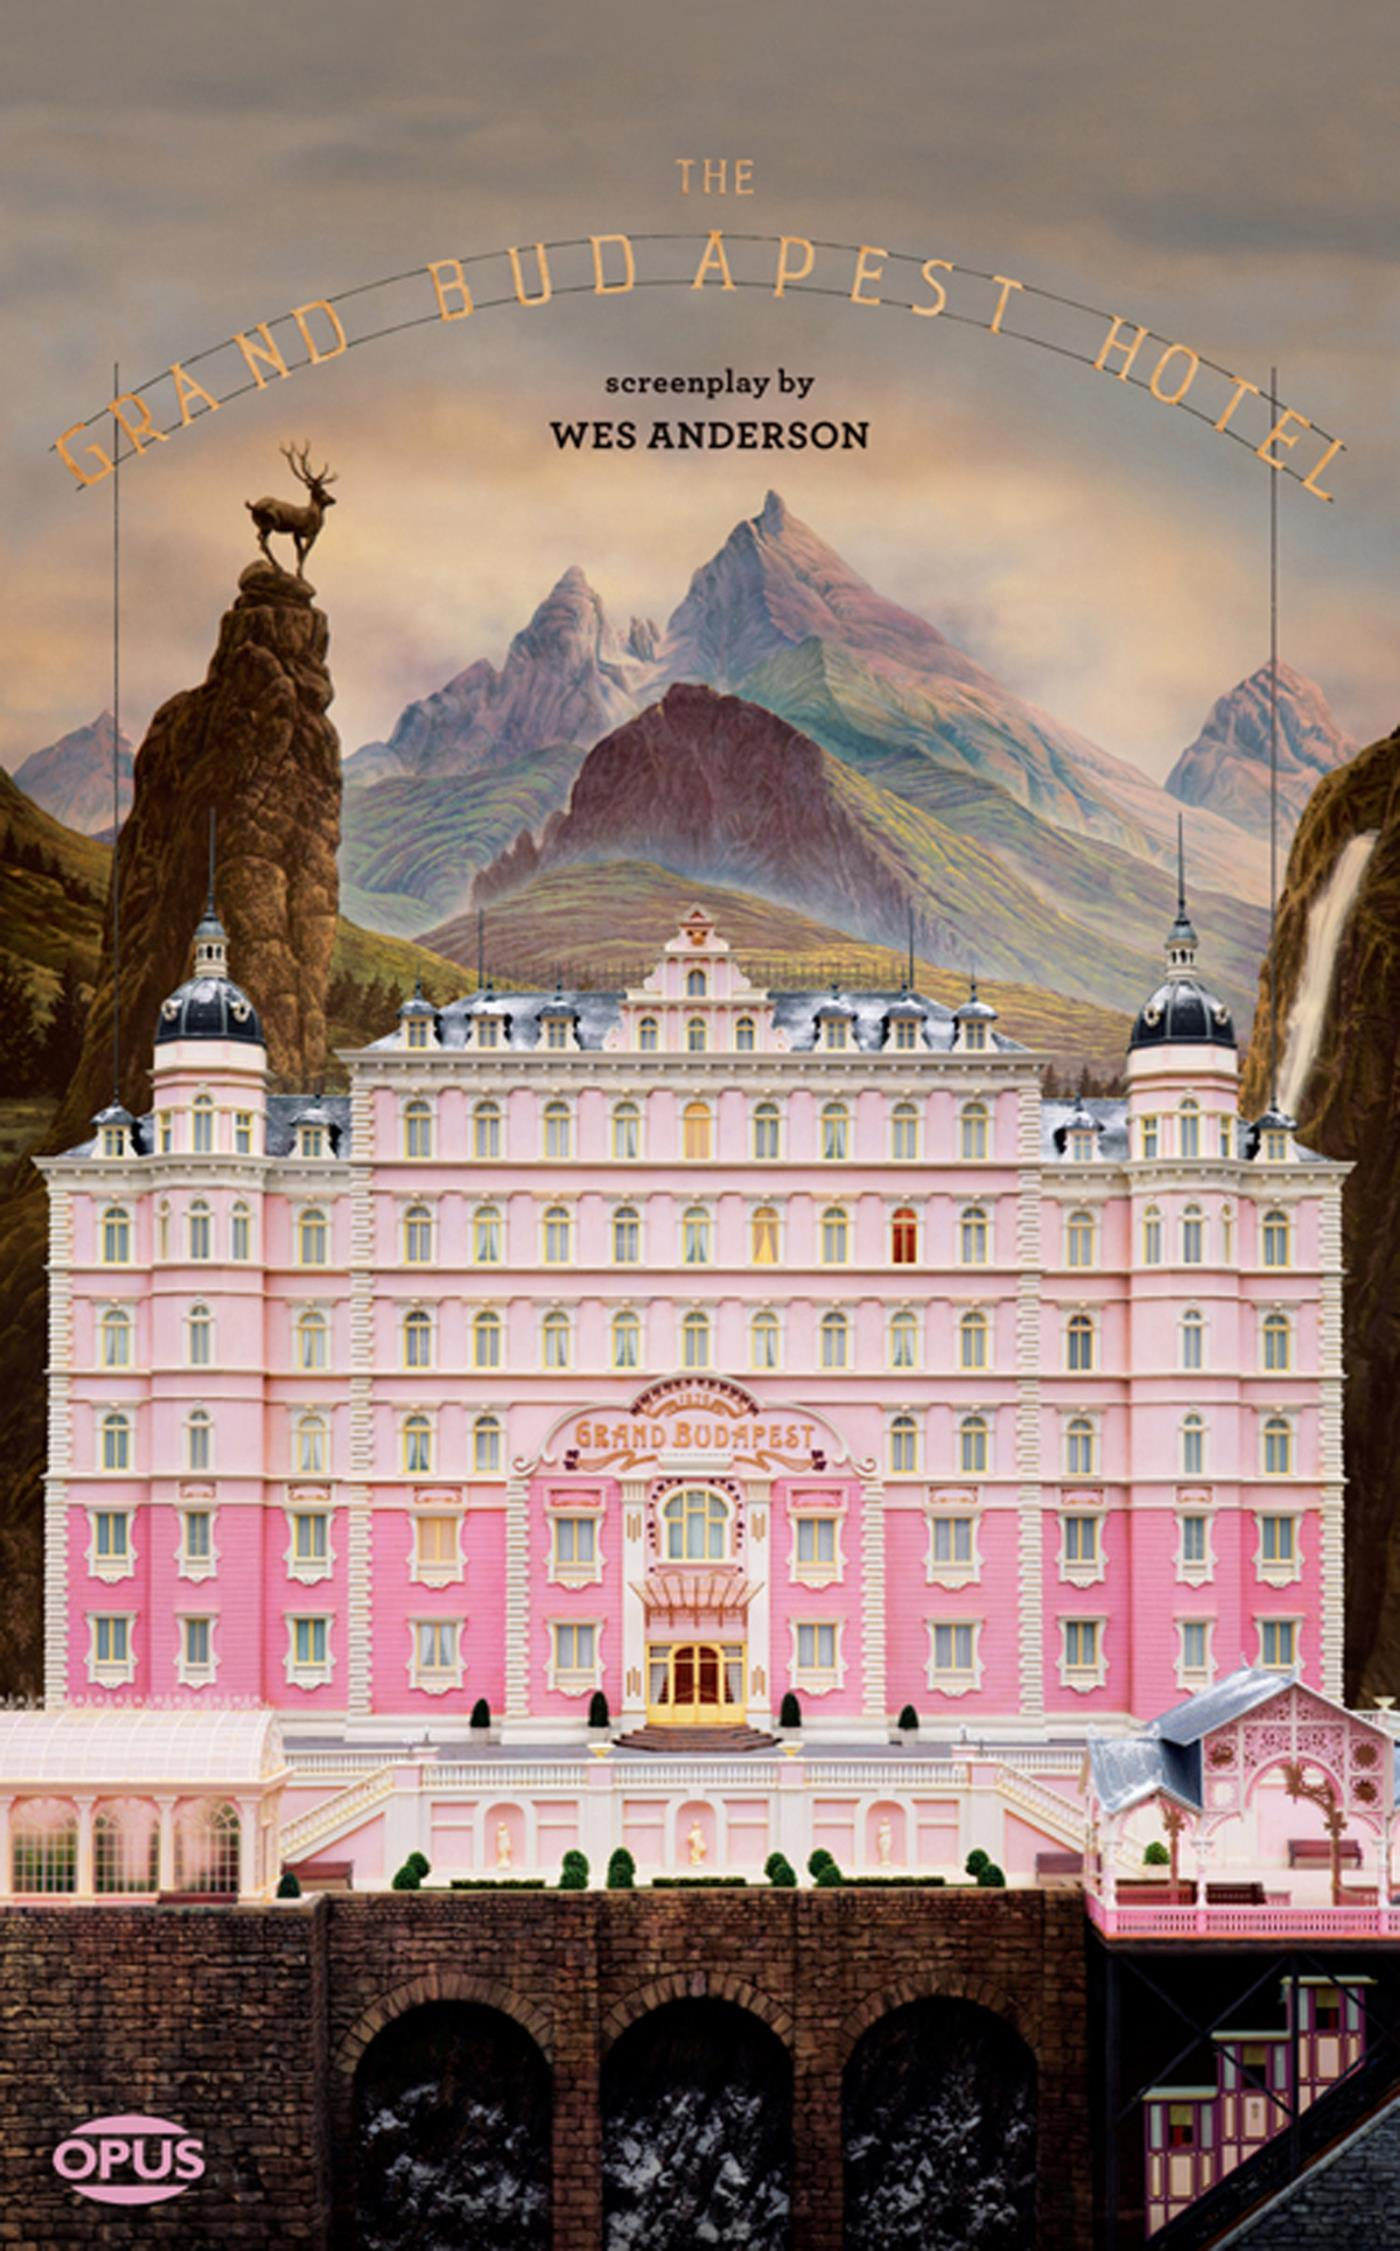 The Grand Budapest Hotel - 15-24.99